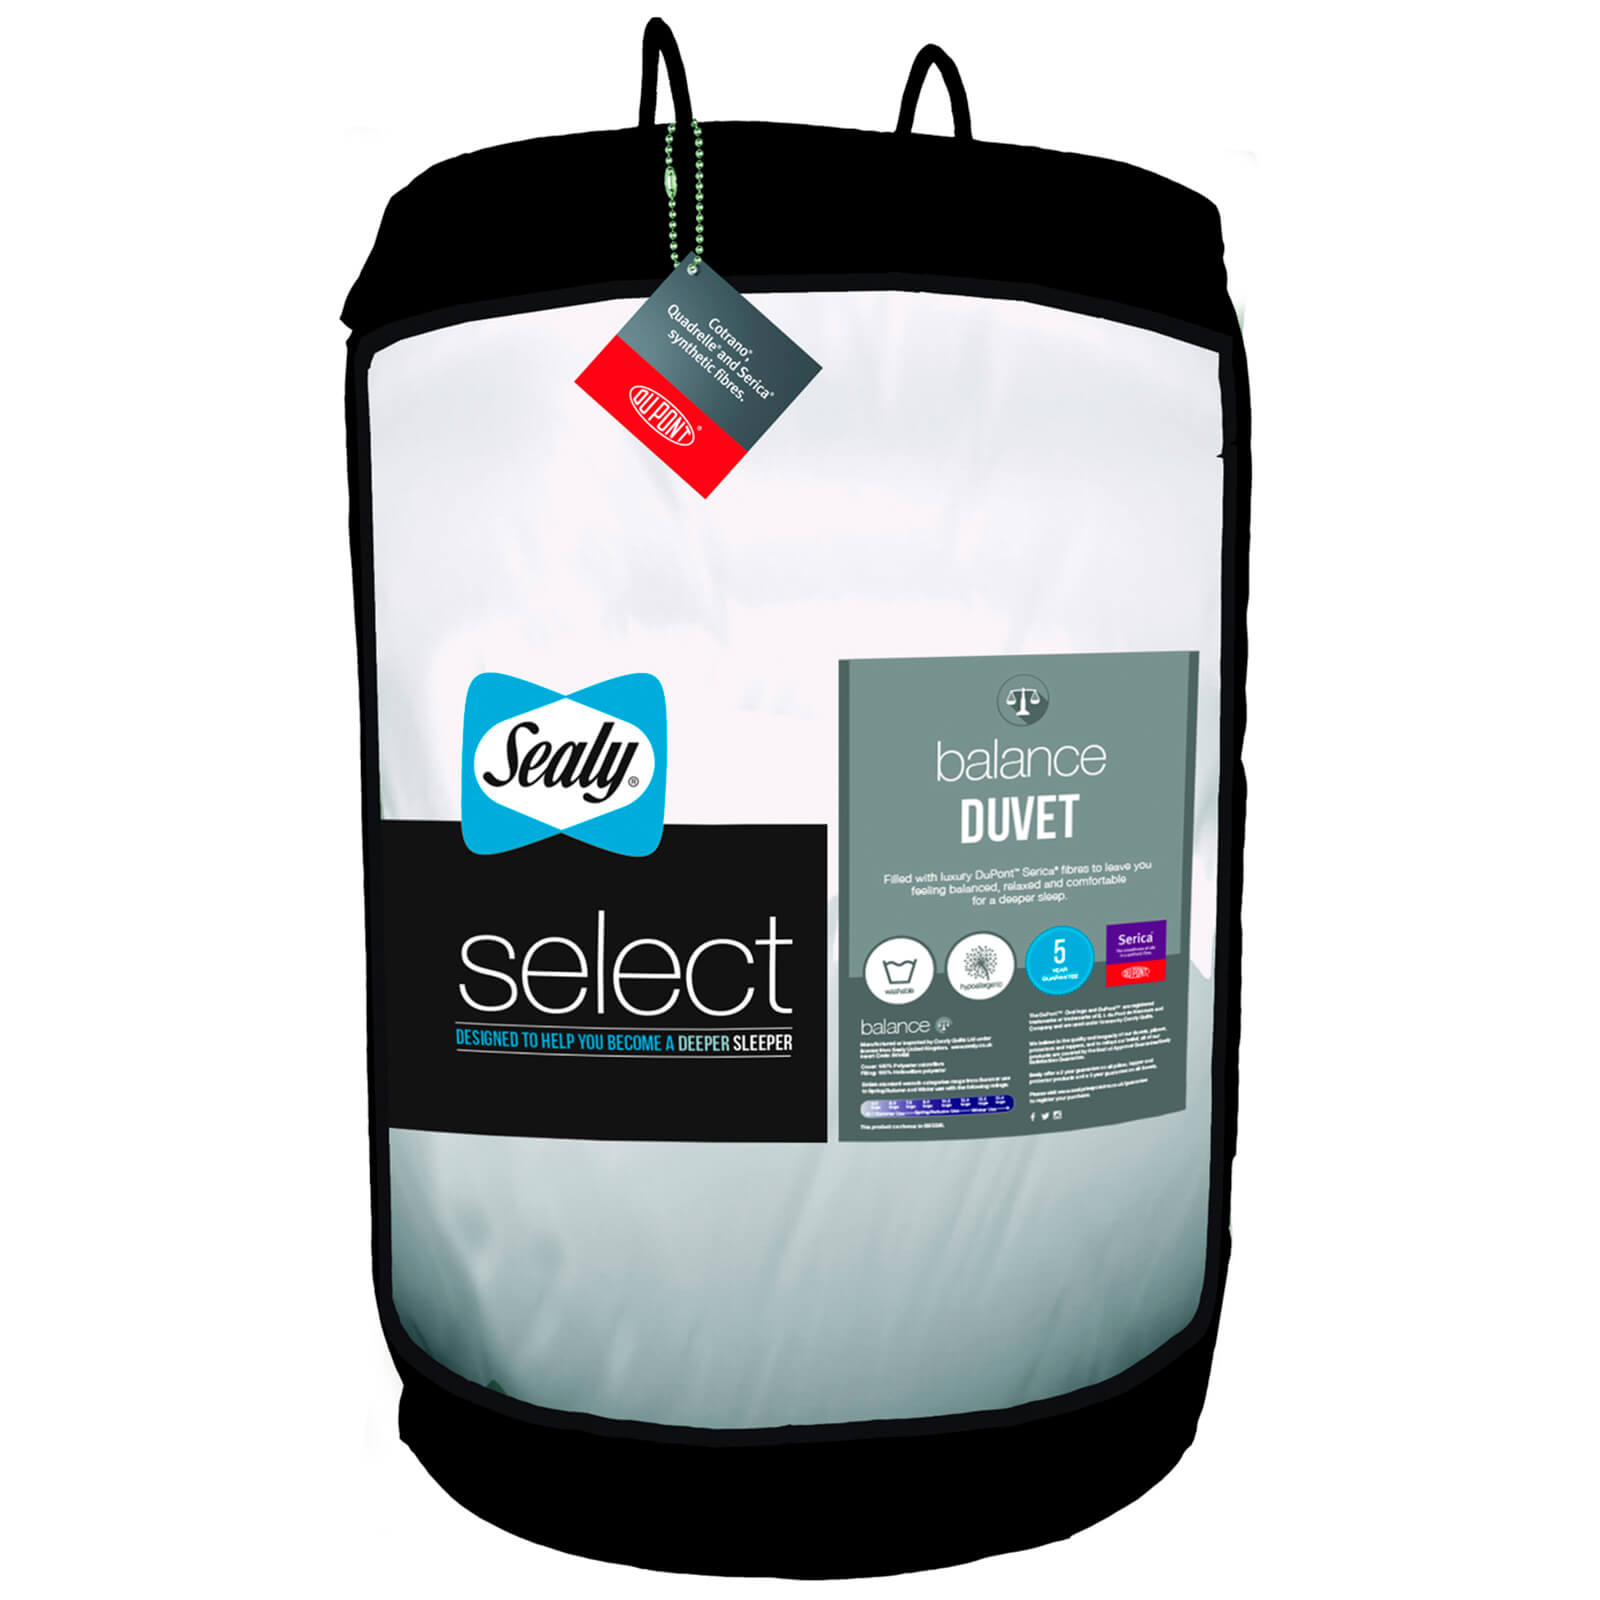 Sealy Select Balance Duvet - 10.5 Tog